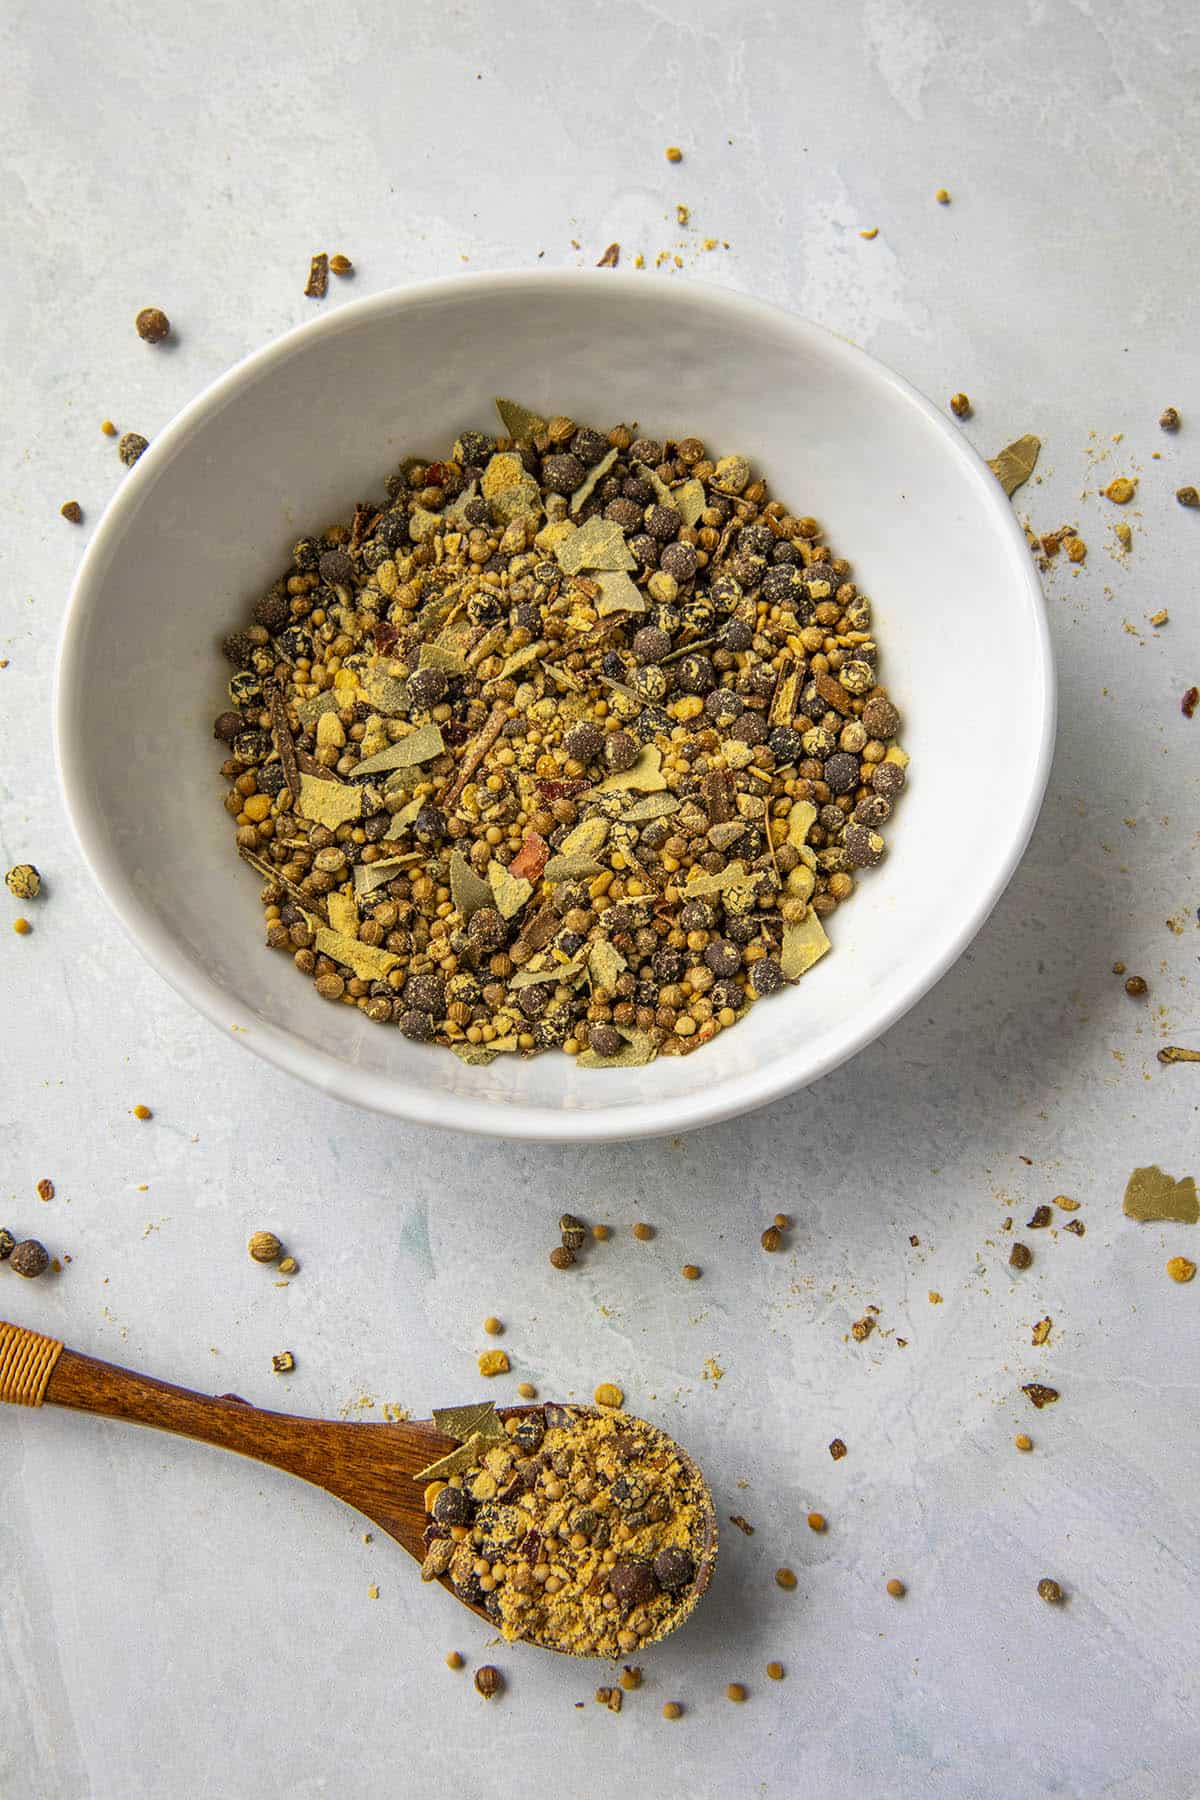 Homemade Pickling Spice in a bowl